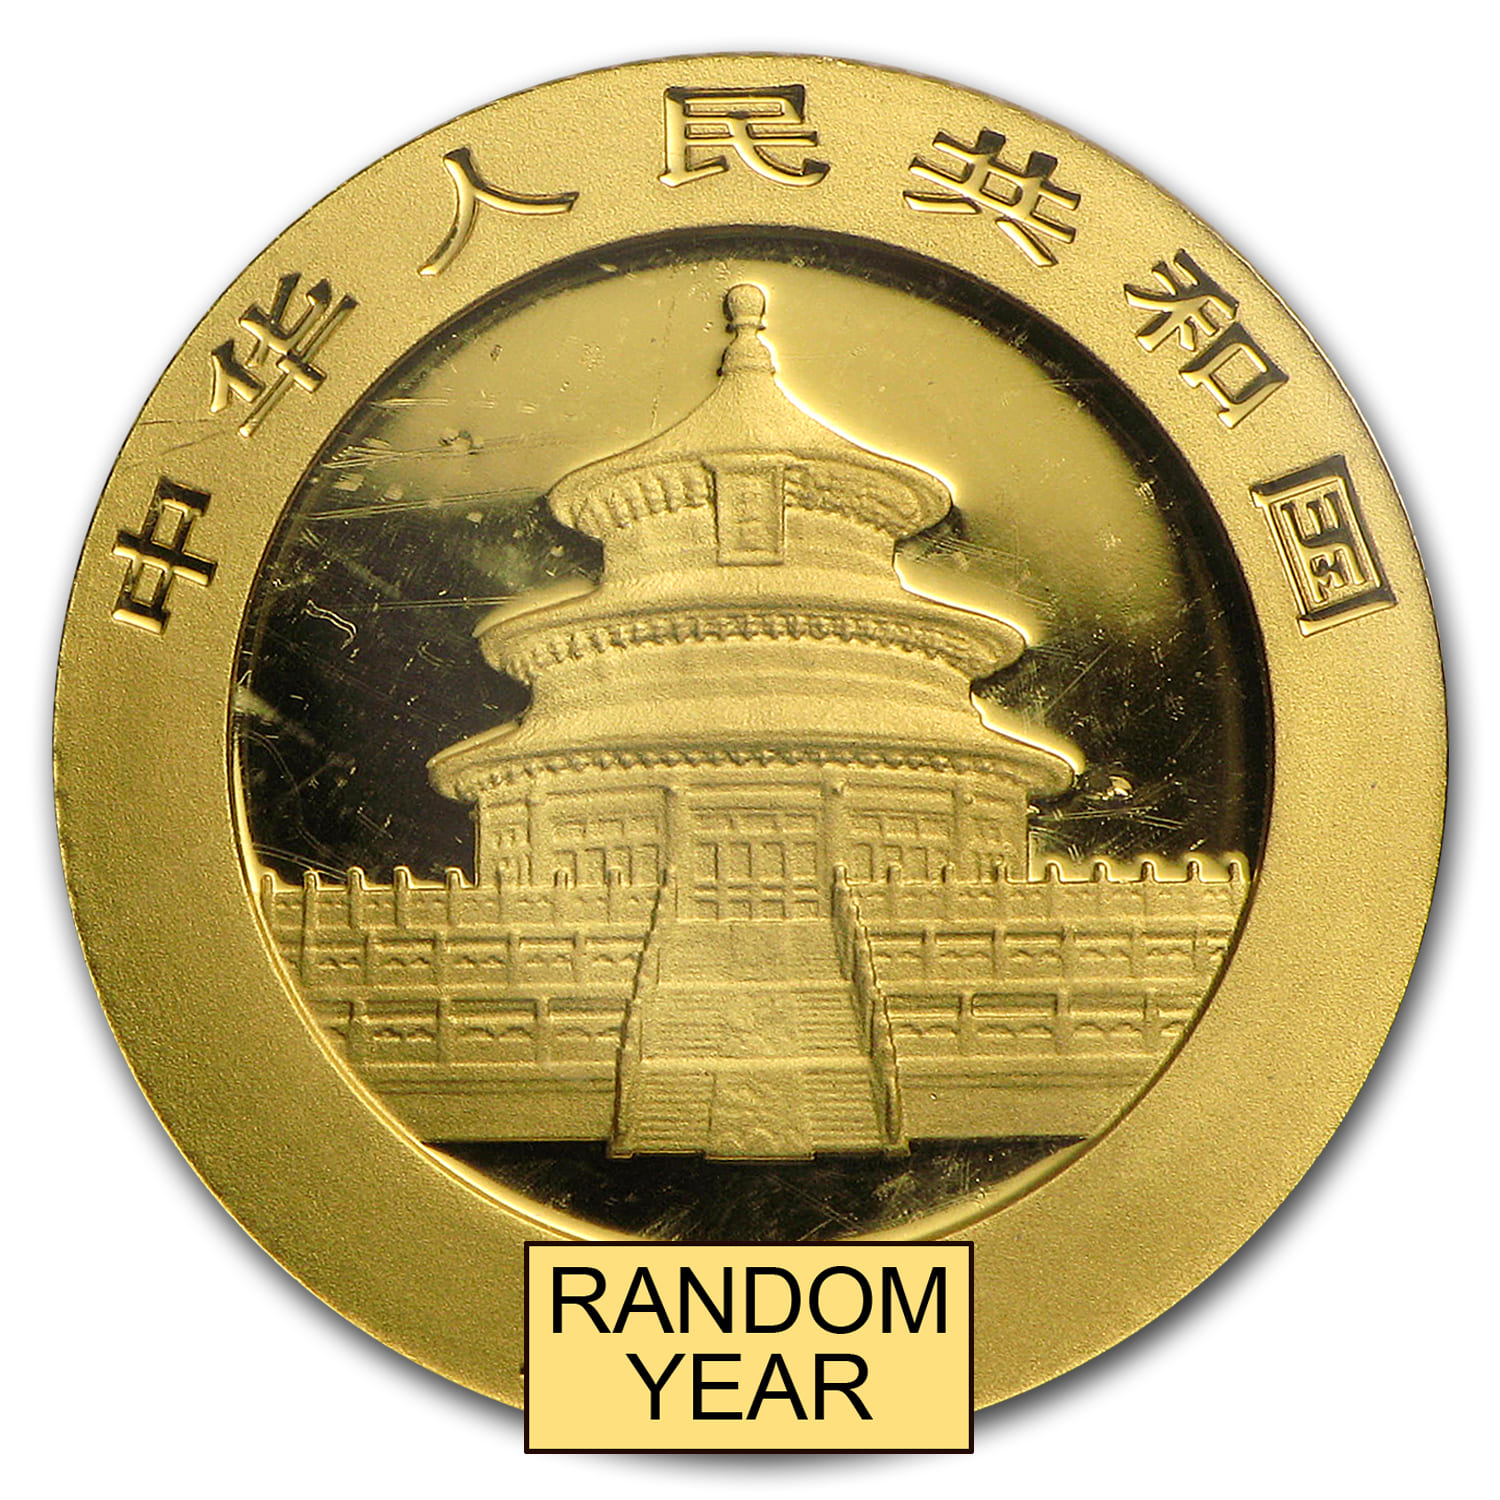 1/10 oz Gold Chinese Panda BU - Random Year (Sealed in Plastic)